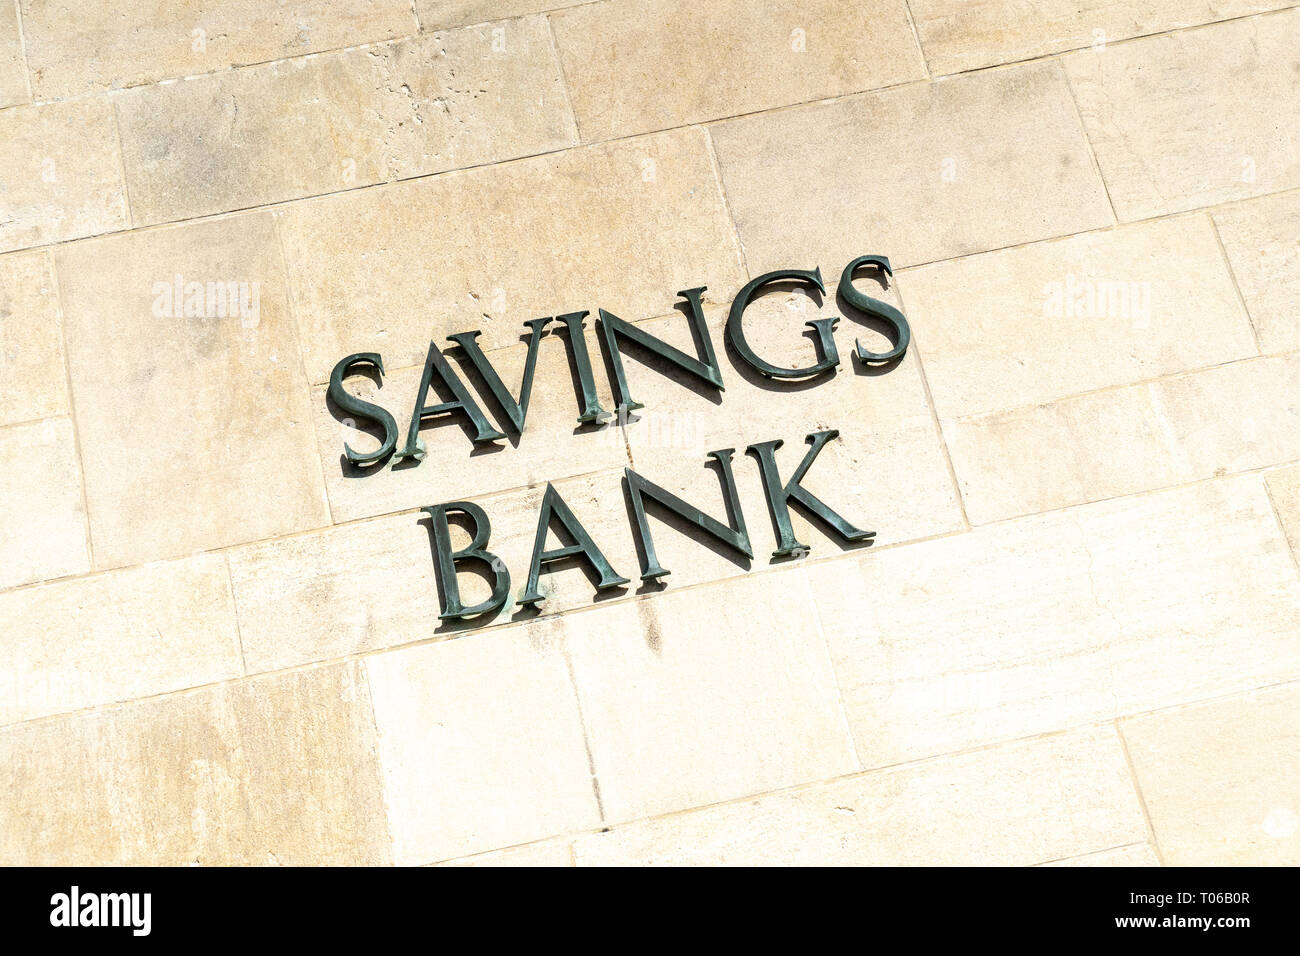 Savings Bank in metal letters on stone wall - Stock Image